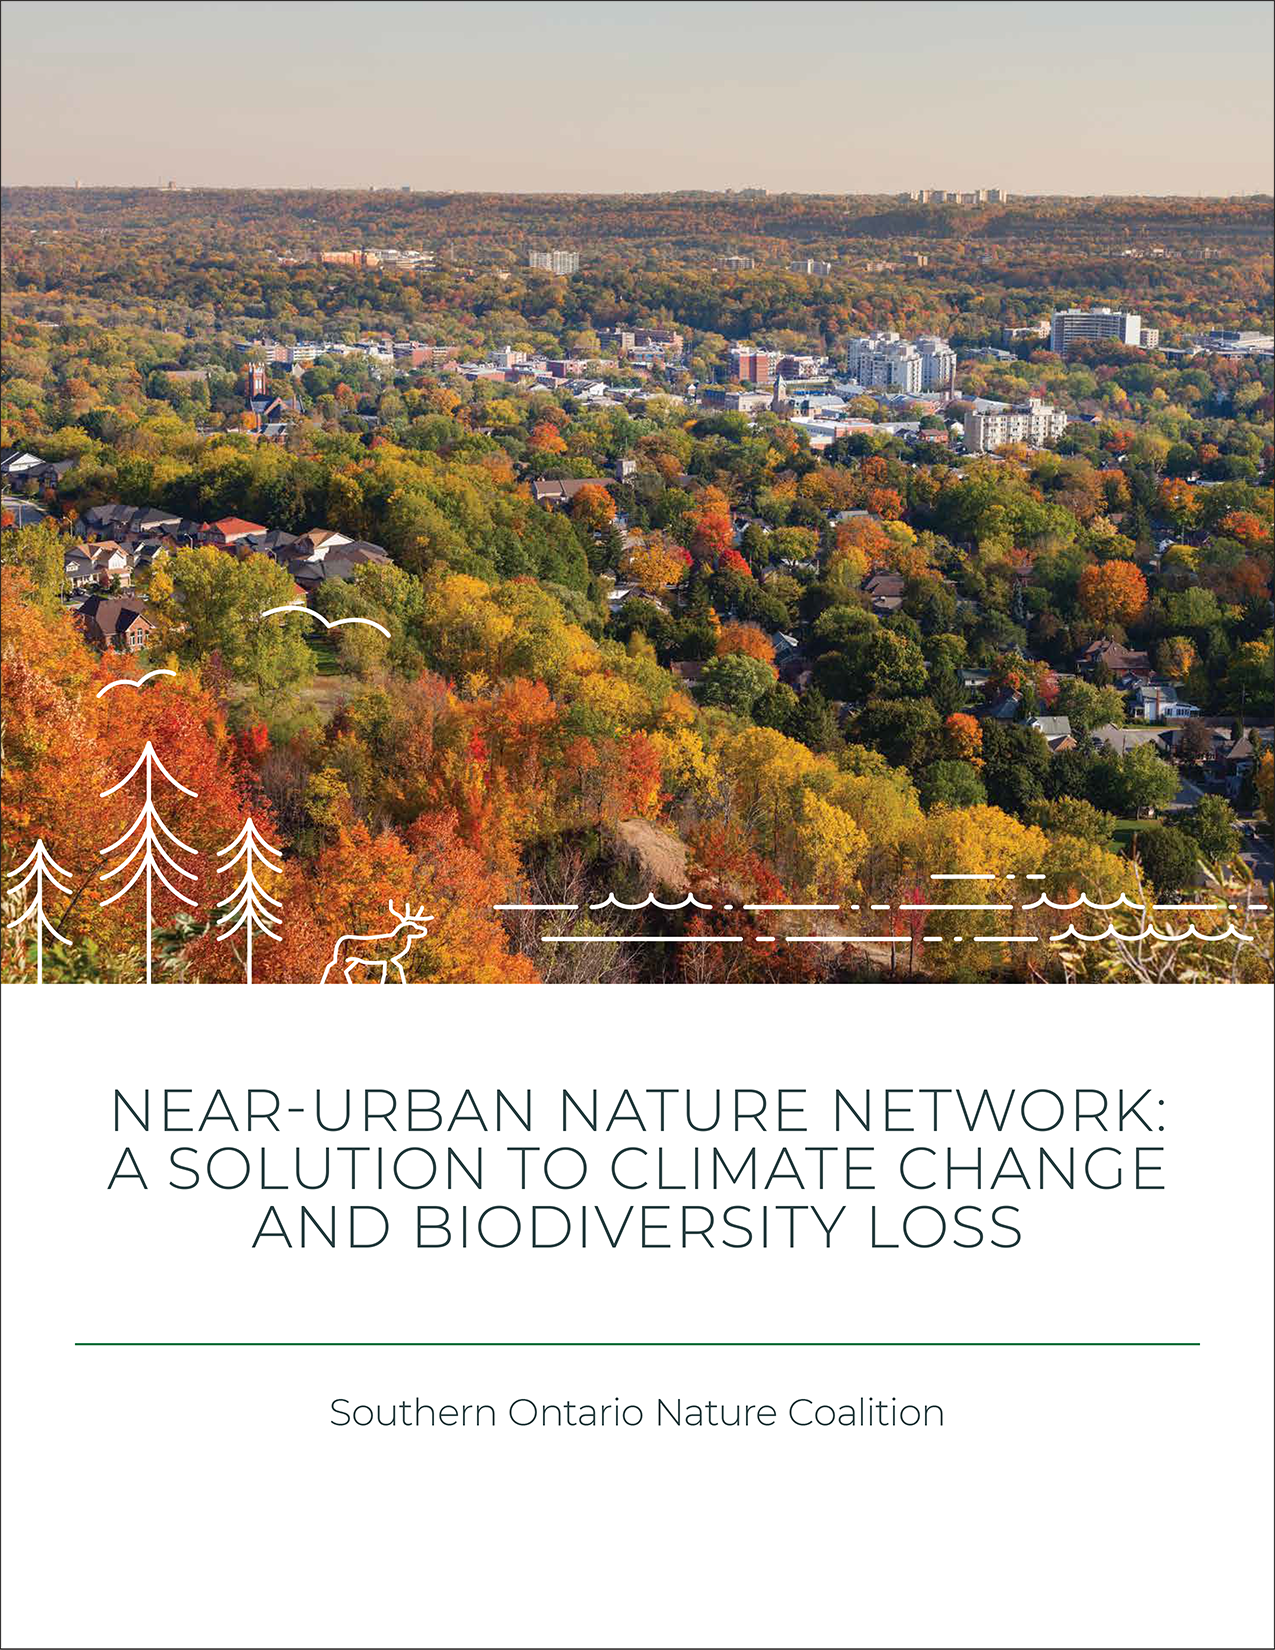 NEAR-URBAN NATURE NETWORK: A SOLUTION TO CLIMATE CHANGE AND BIODIVERSITY LOSS